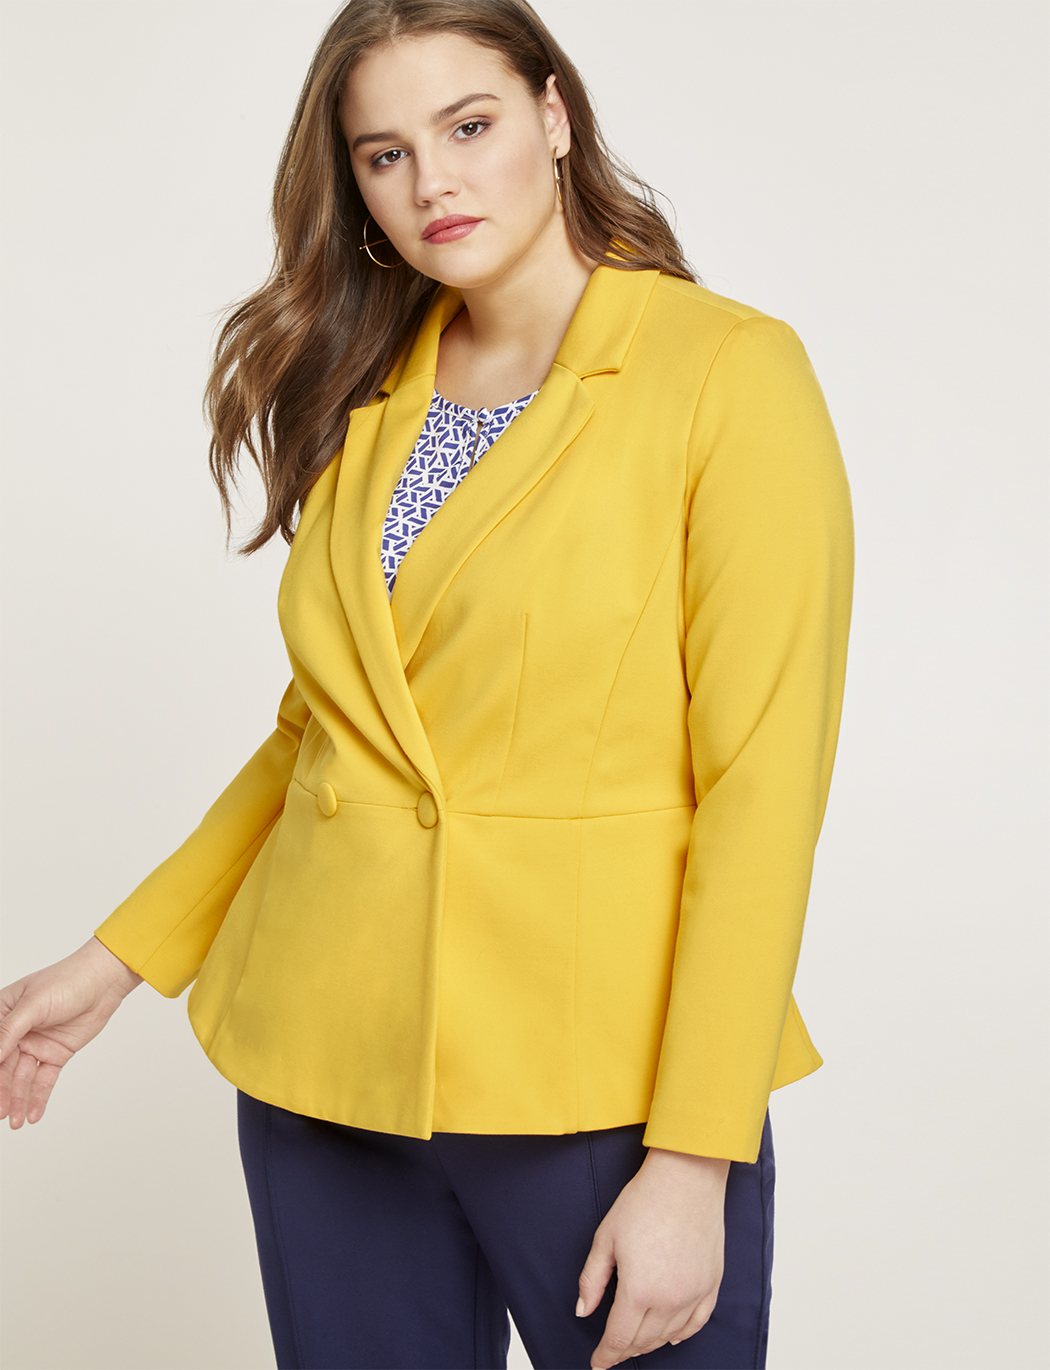 9-to-5 Peplum Work Blazer